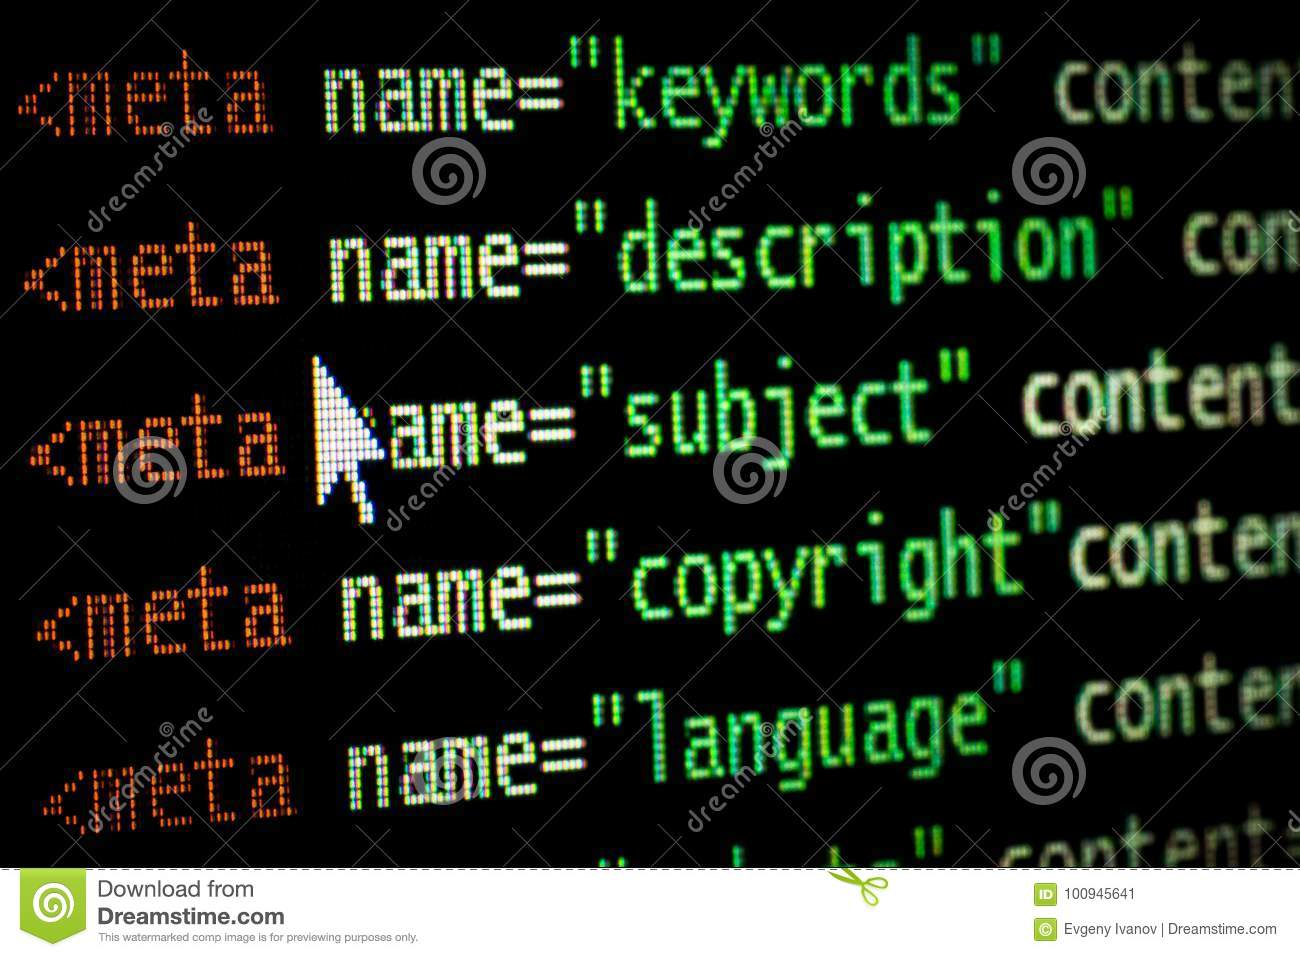 HTML web page computer programming code meta tags in red light and dark green with mouse pointer on black background seo